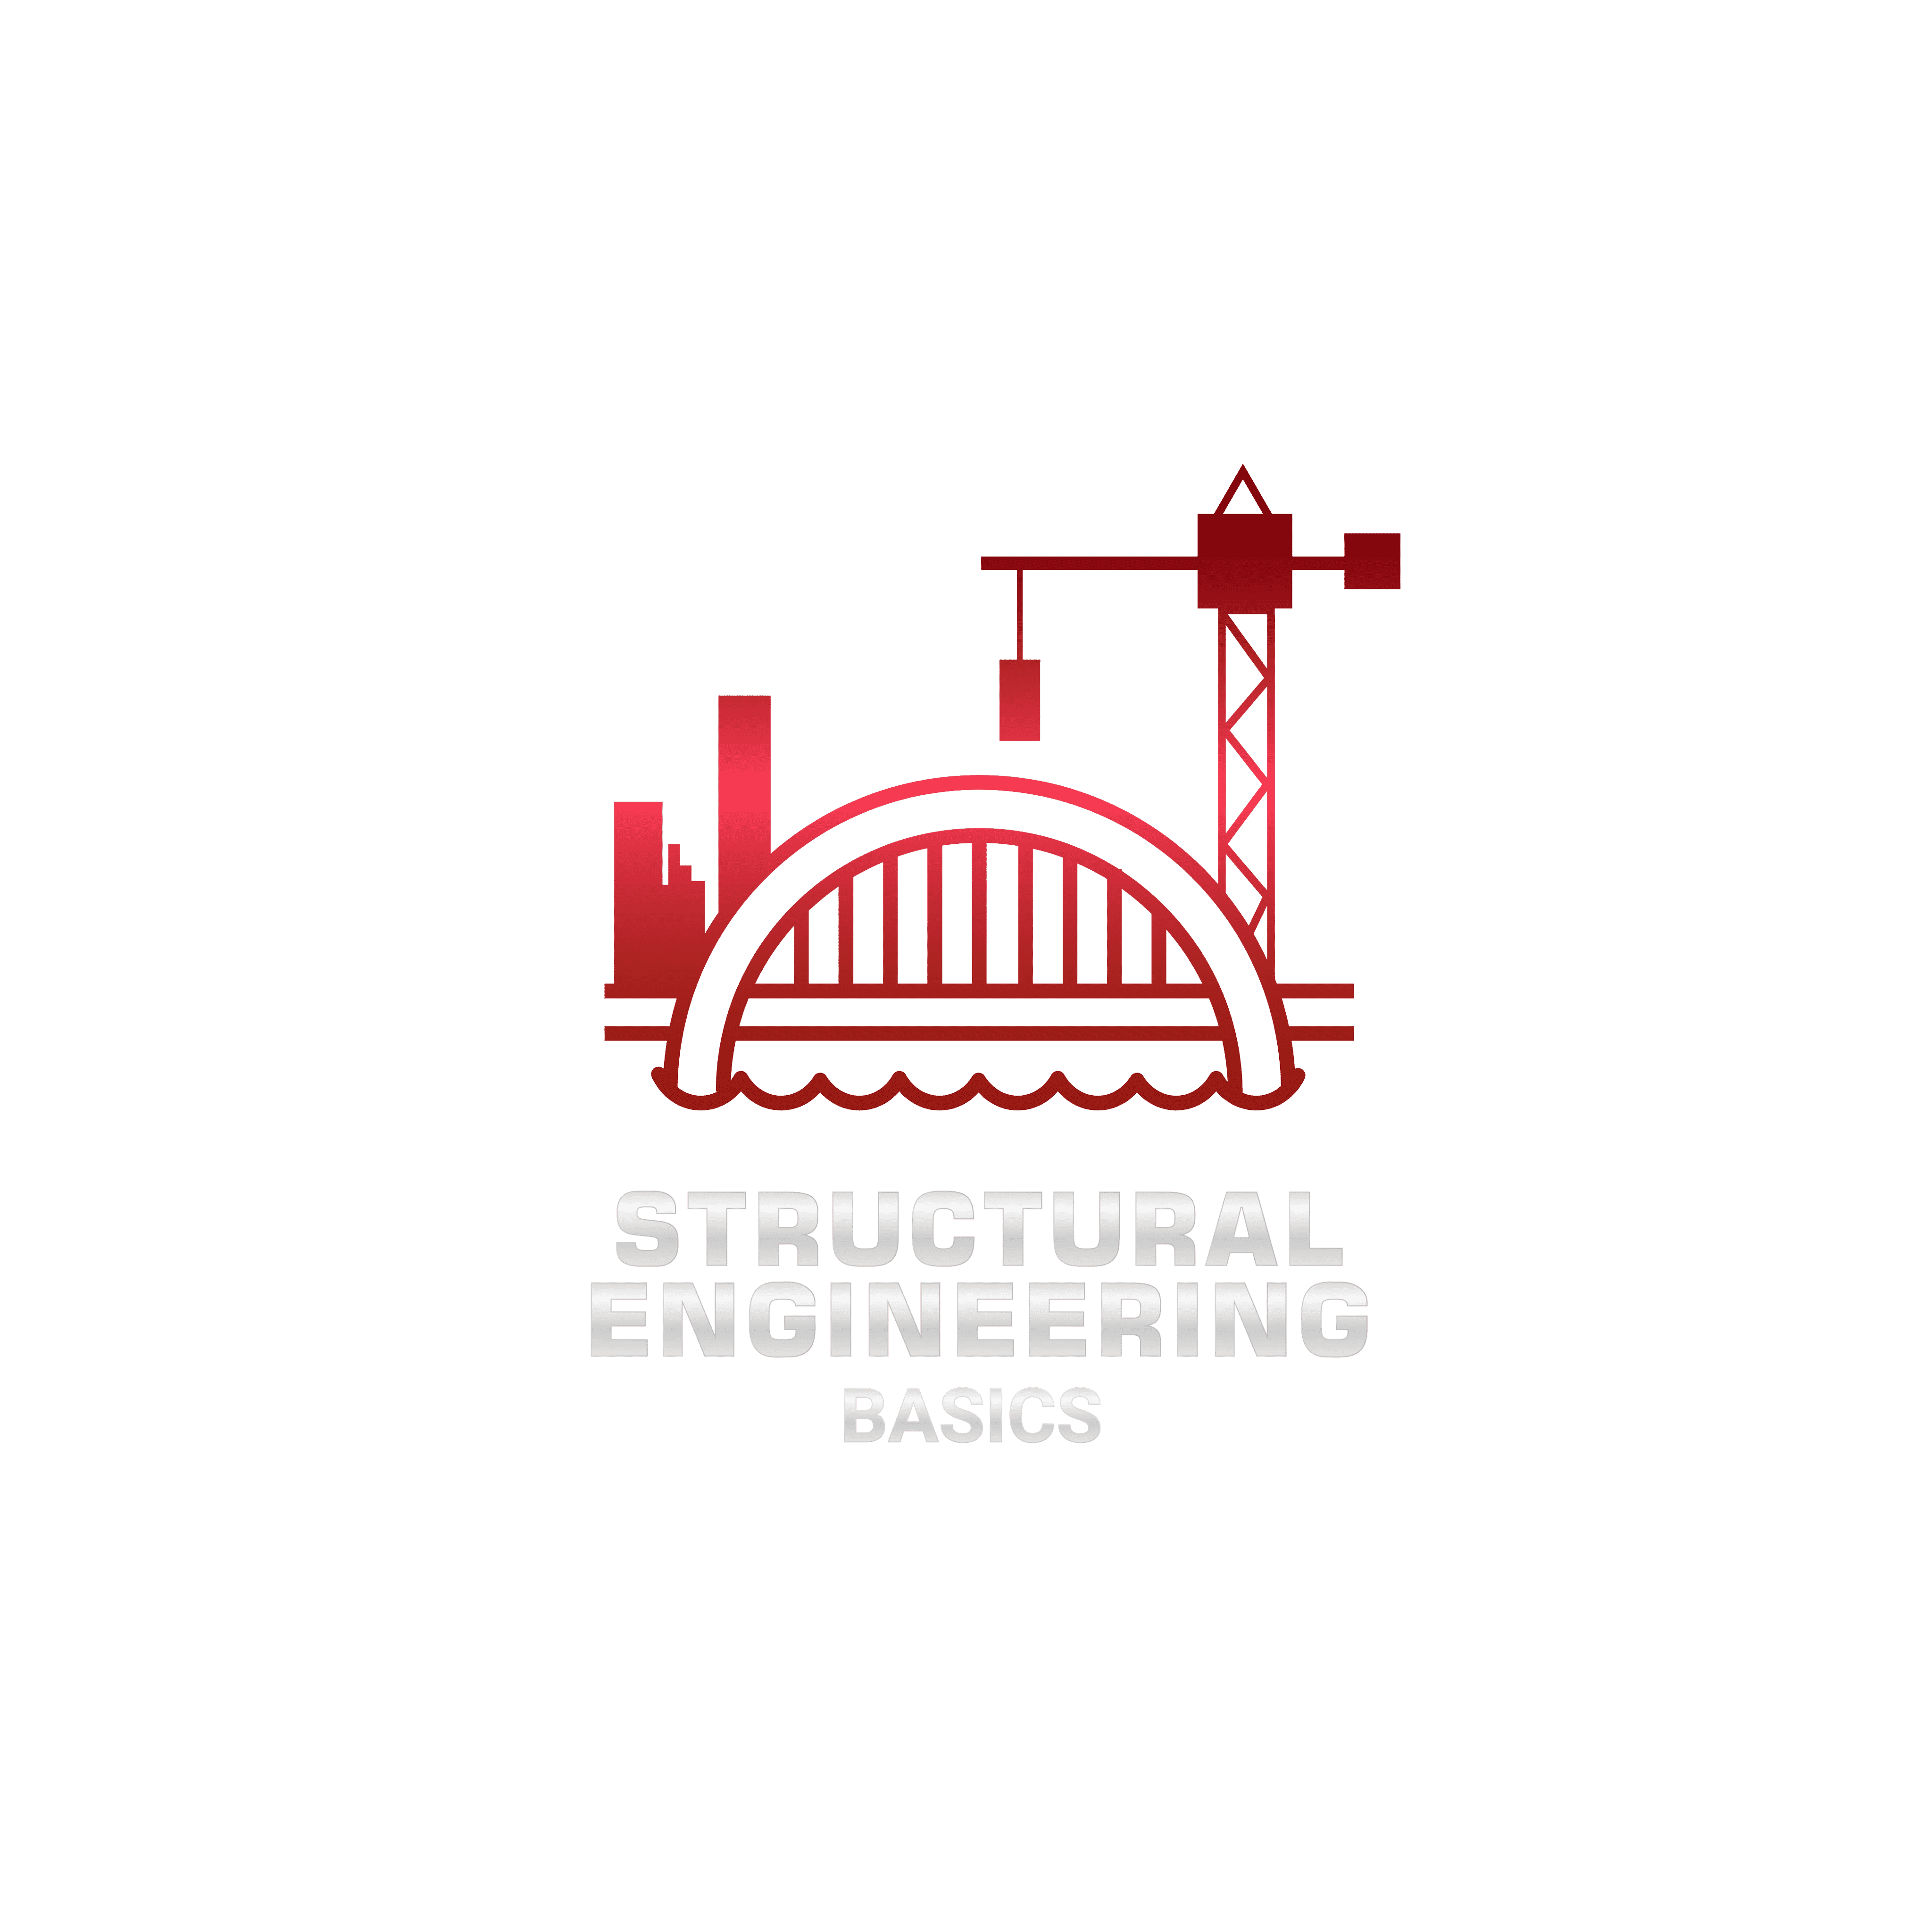 structural engineering basics logo red and silver